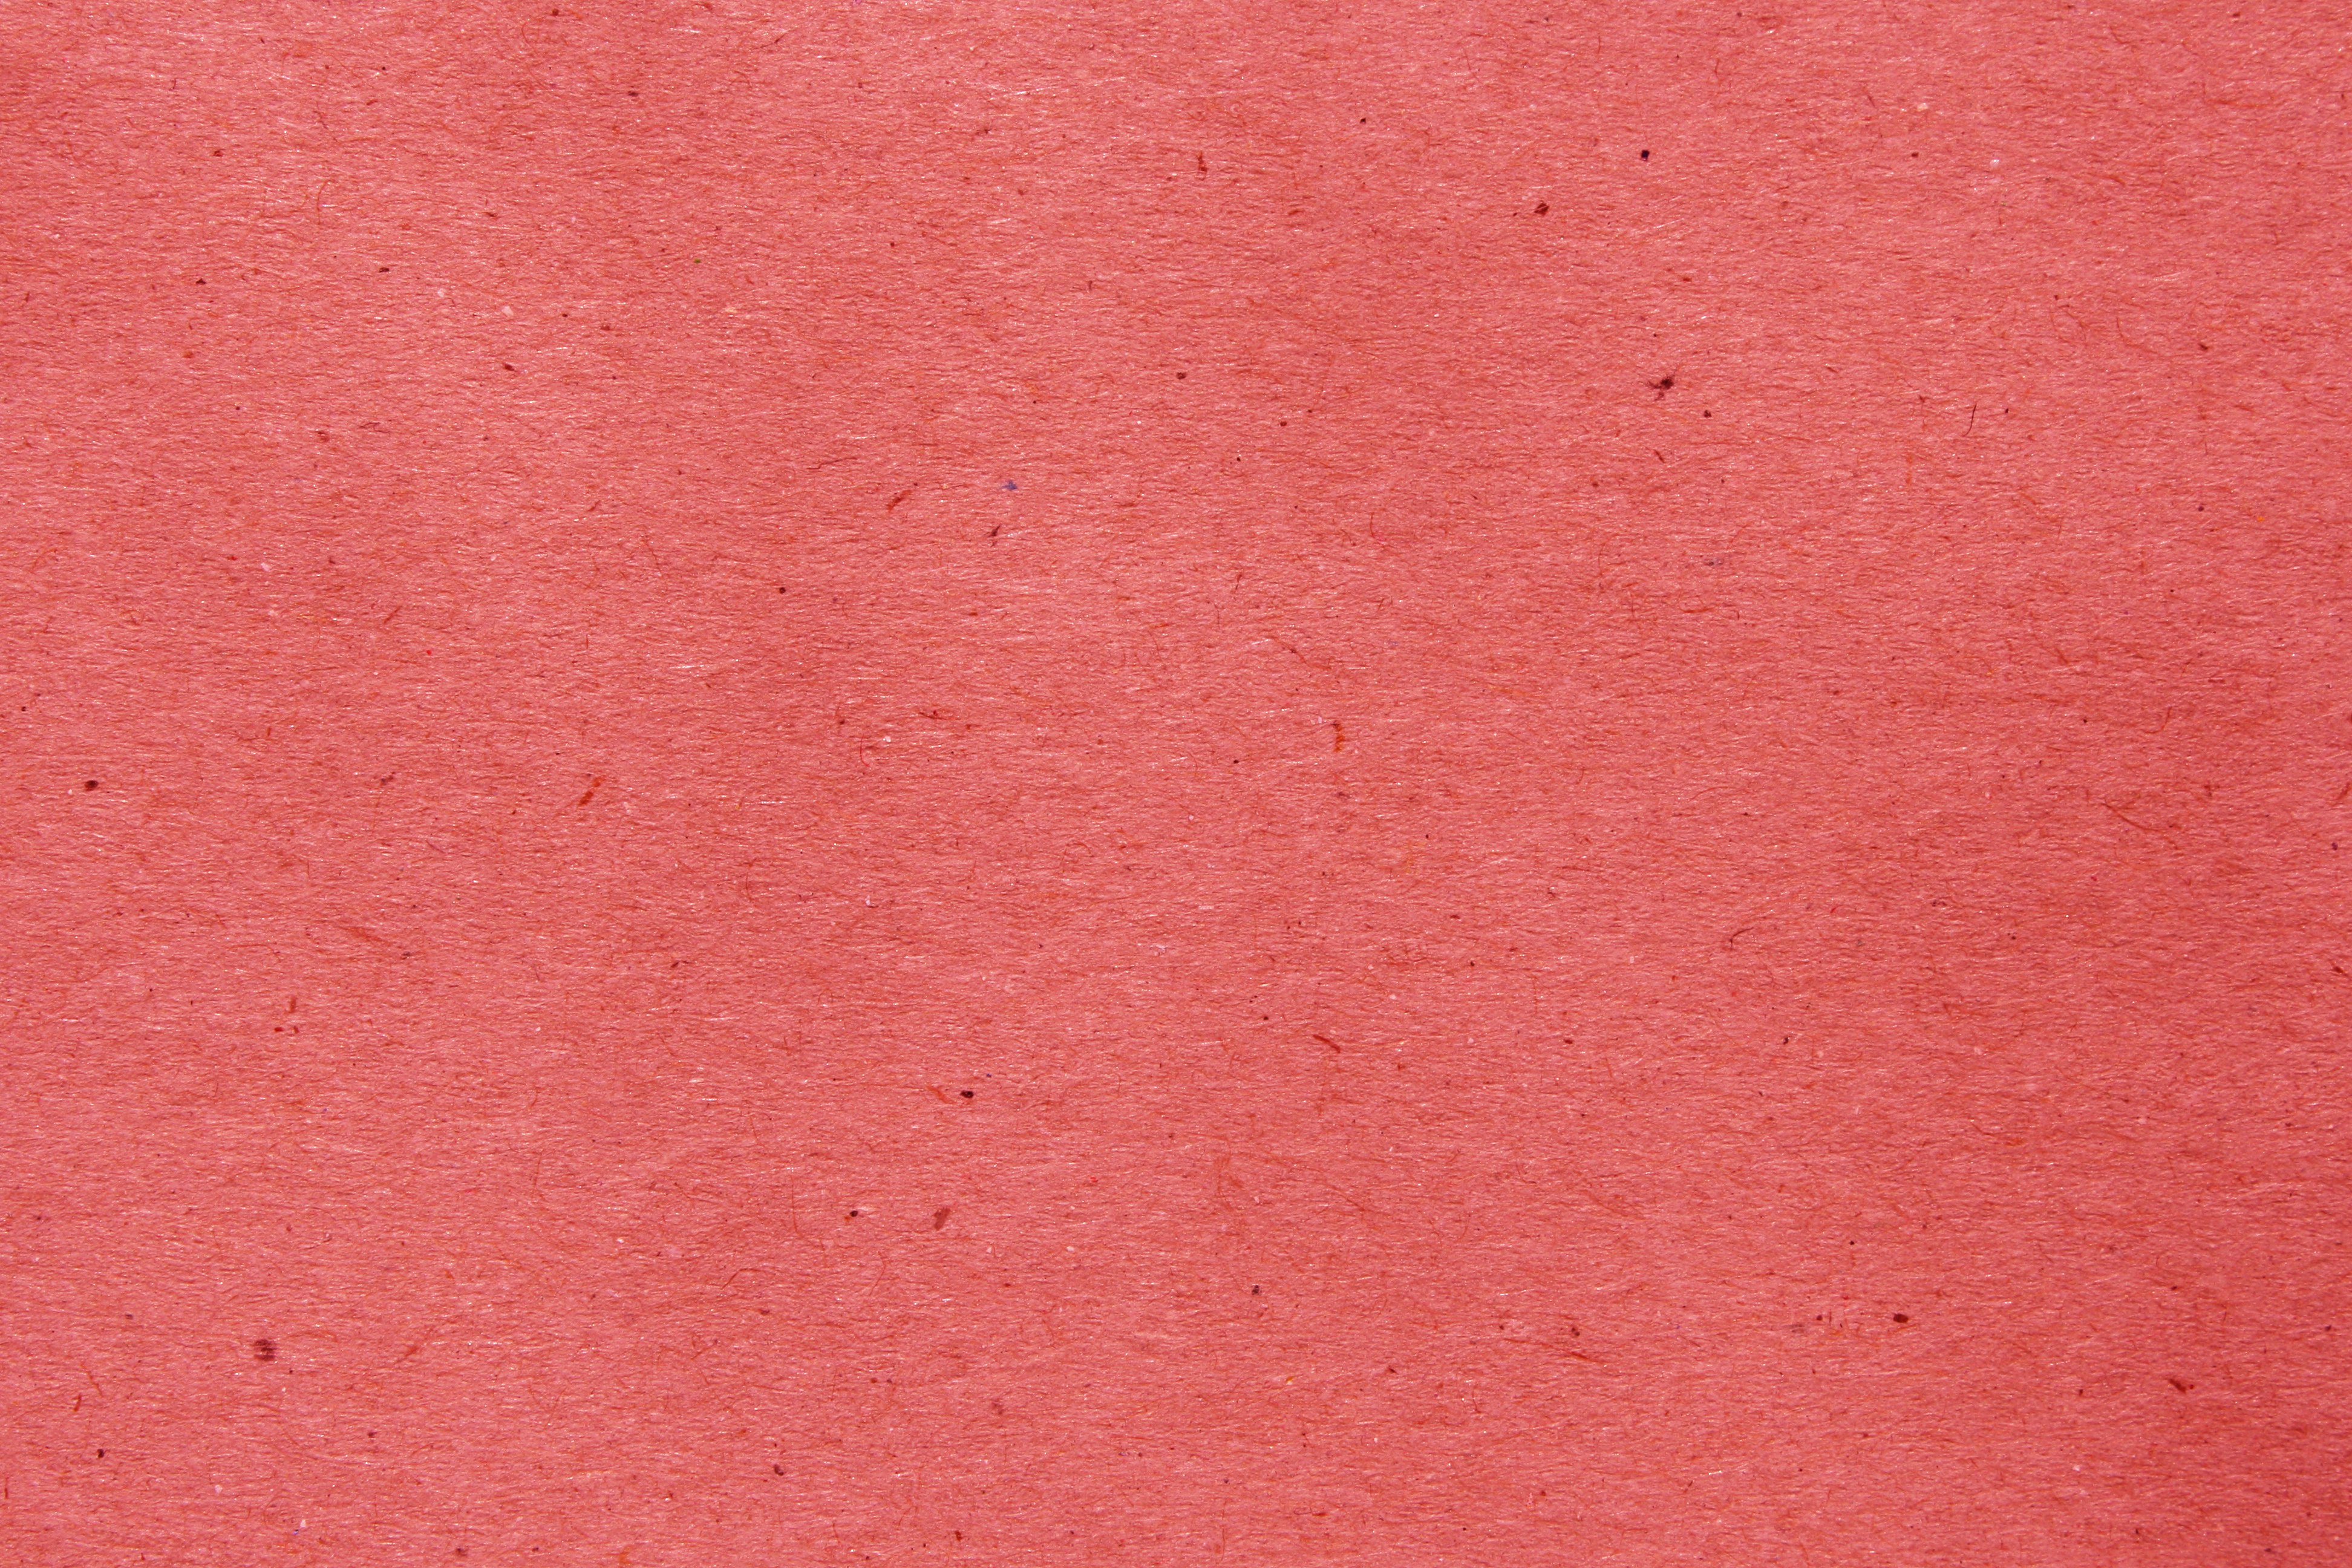 Red Paper Texture with Flecks Picture | Free Photograph | Photos ...